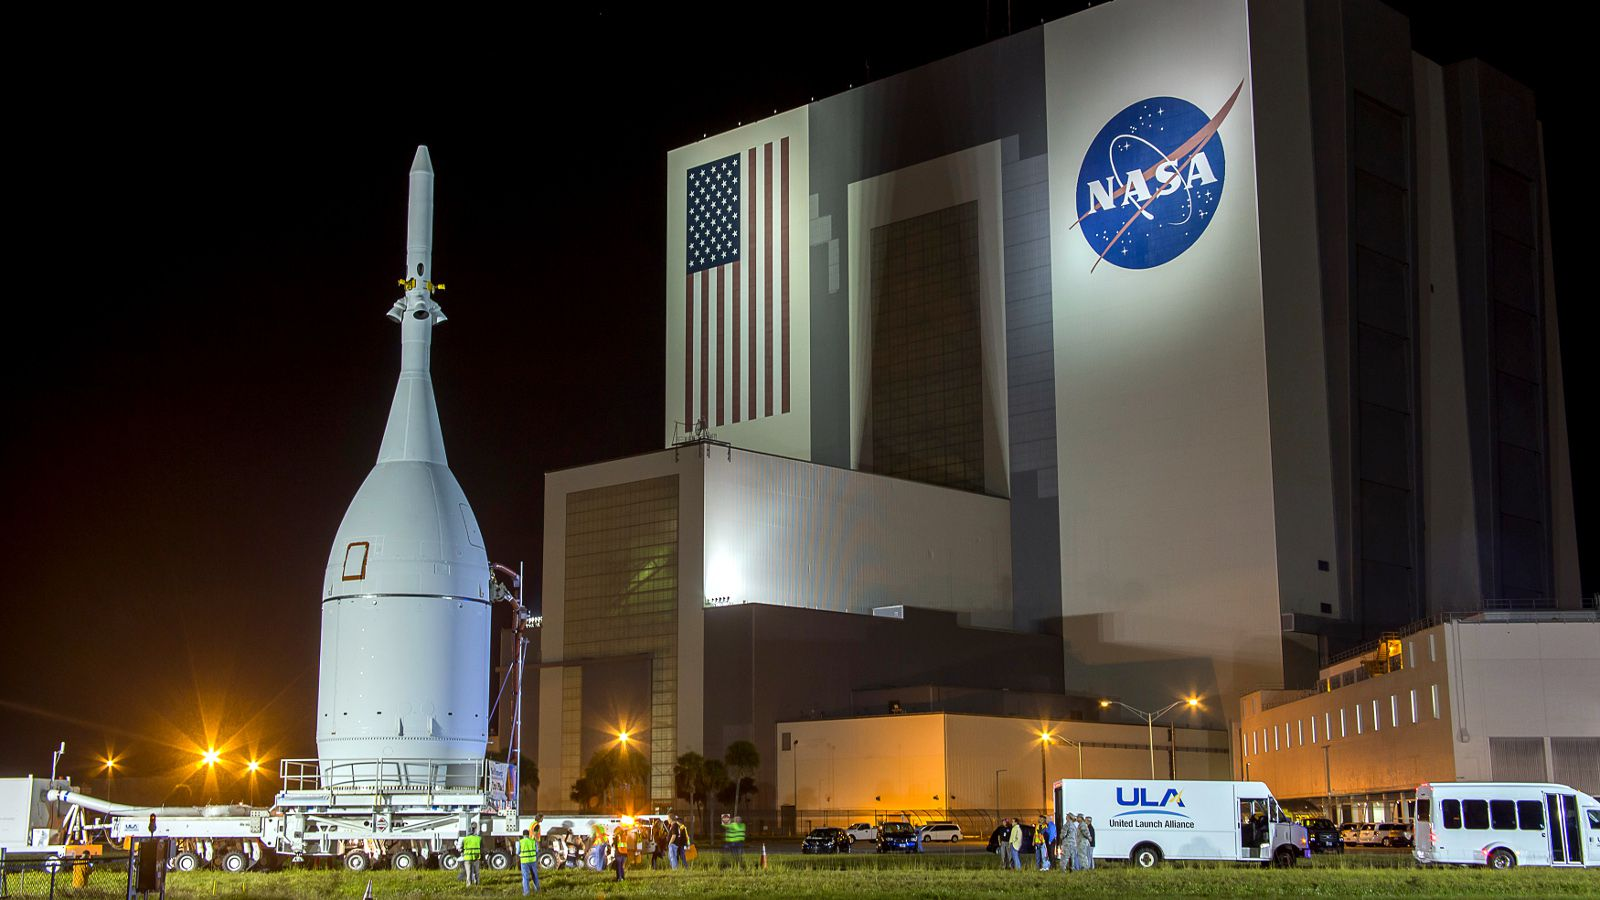 The Orion capsule is moved at Kennedy Space Center in Florida November 11, 2014. The NASA spacecraft designed to one day fly astronauts to Mars rolled out of its processing hangar at the U.S. space agency's Kennedy Space Center in Florida on Thursday to be prepared for a debut test flight in December.